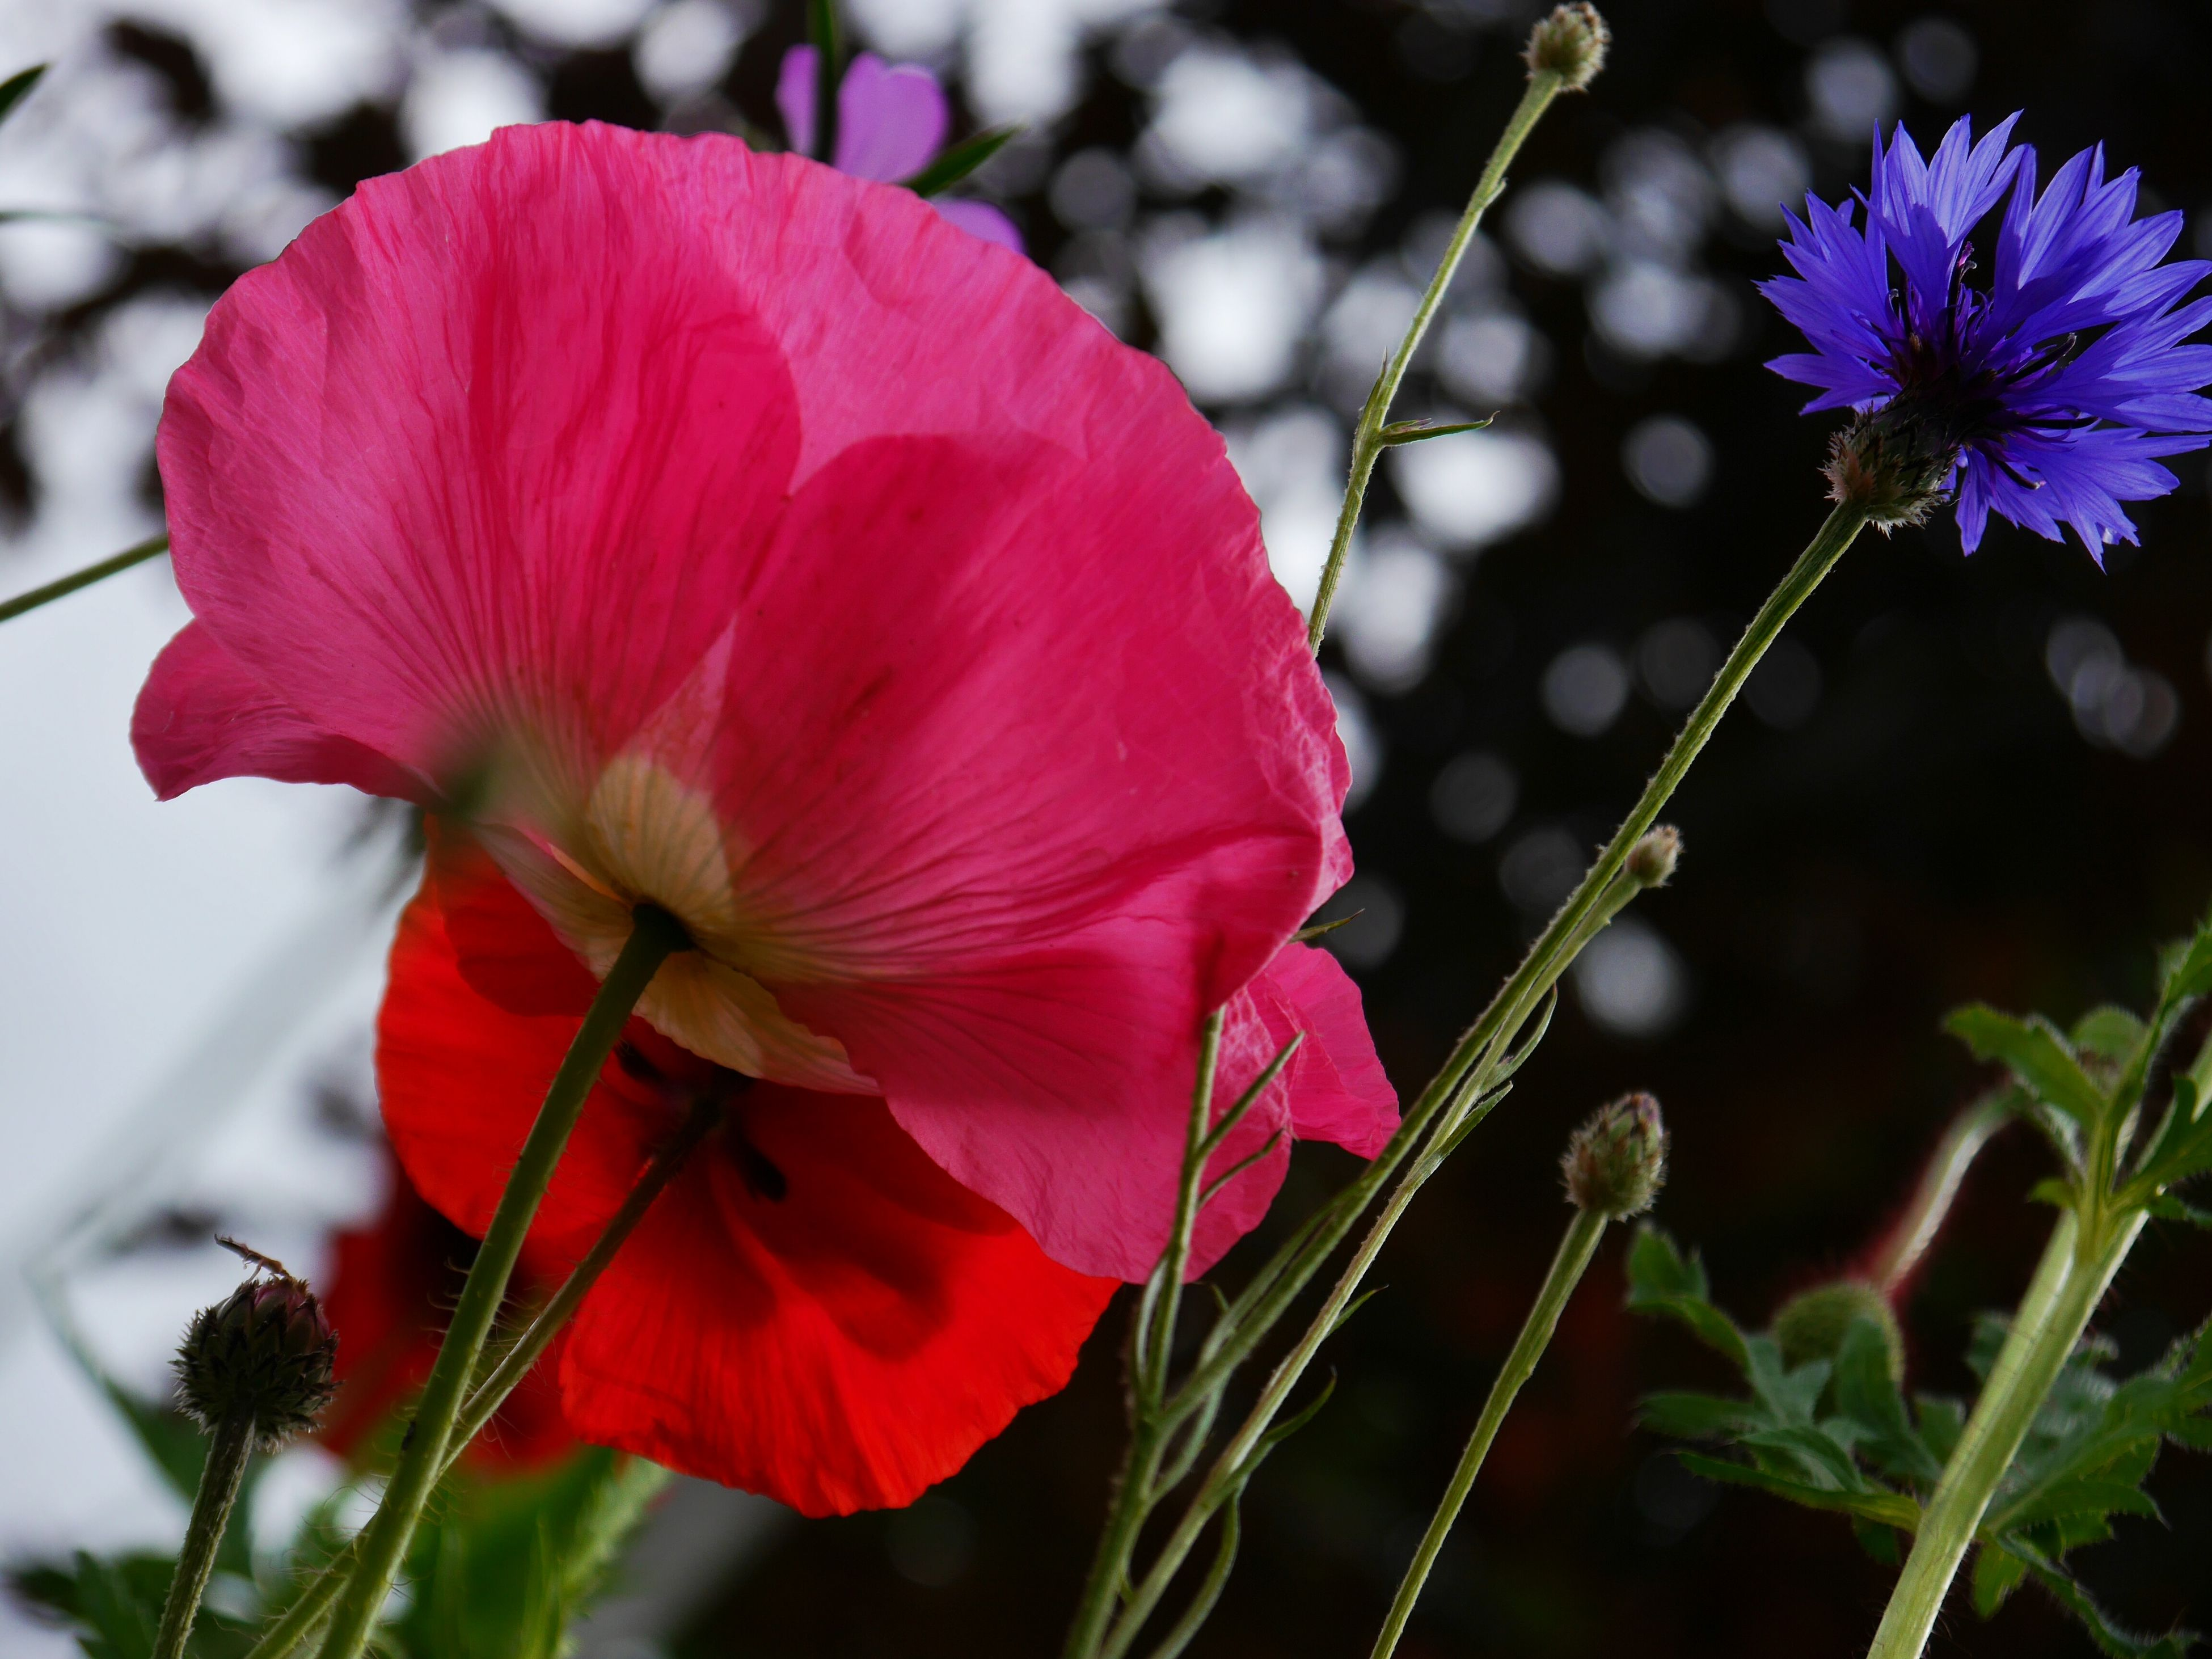 flower, freshness, fragility, petal, growth, focus on foreground, flower head, beauty in nature, close-up, plant, nature, stem, blooming, pink color, in bloom, blossom, day, outdoors, selective focus, no people